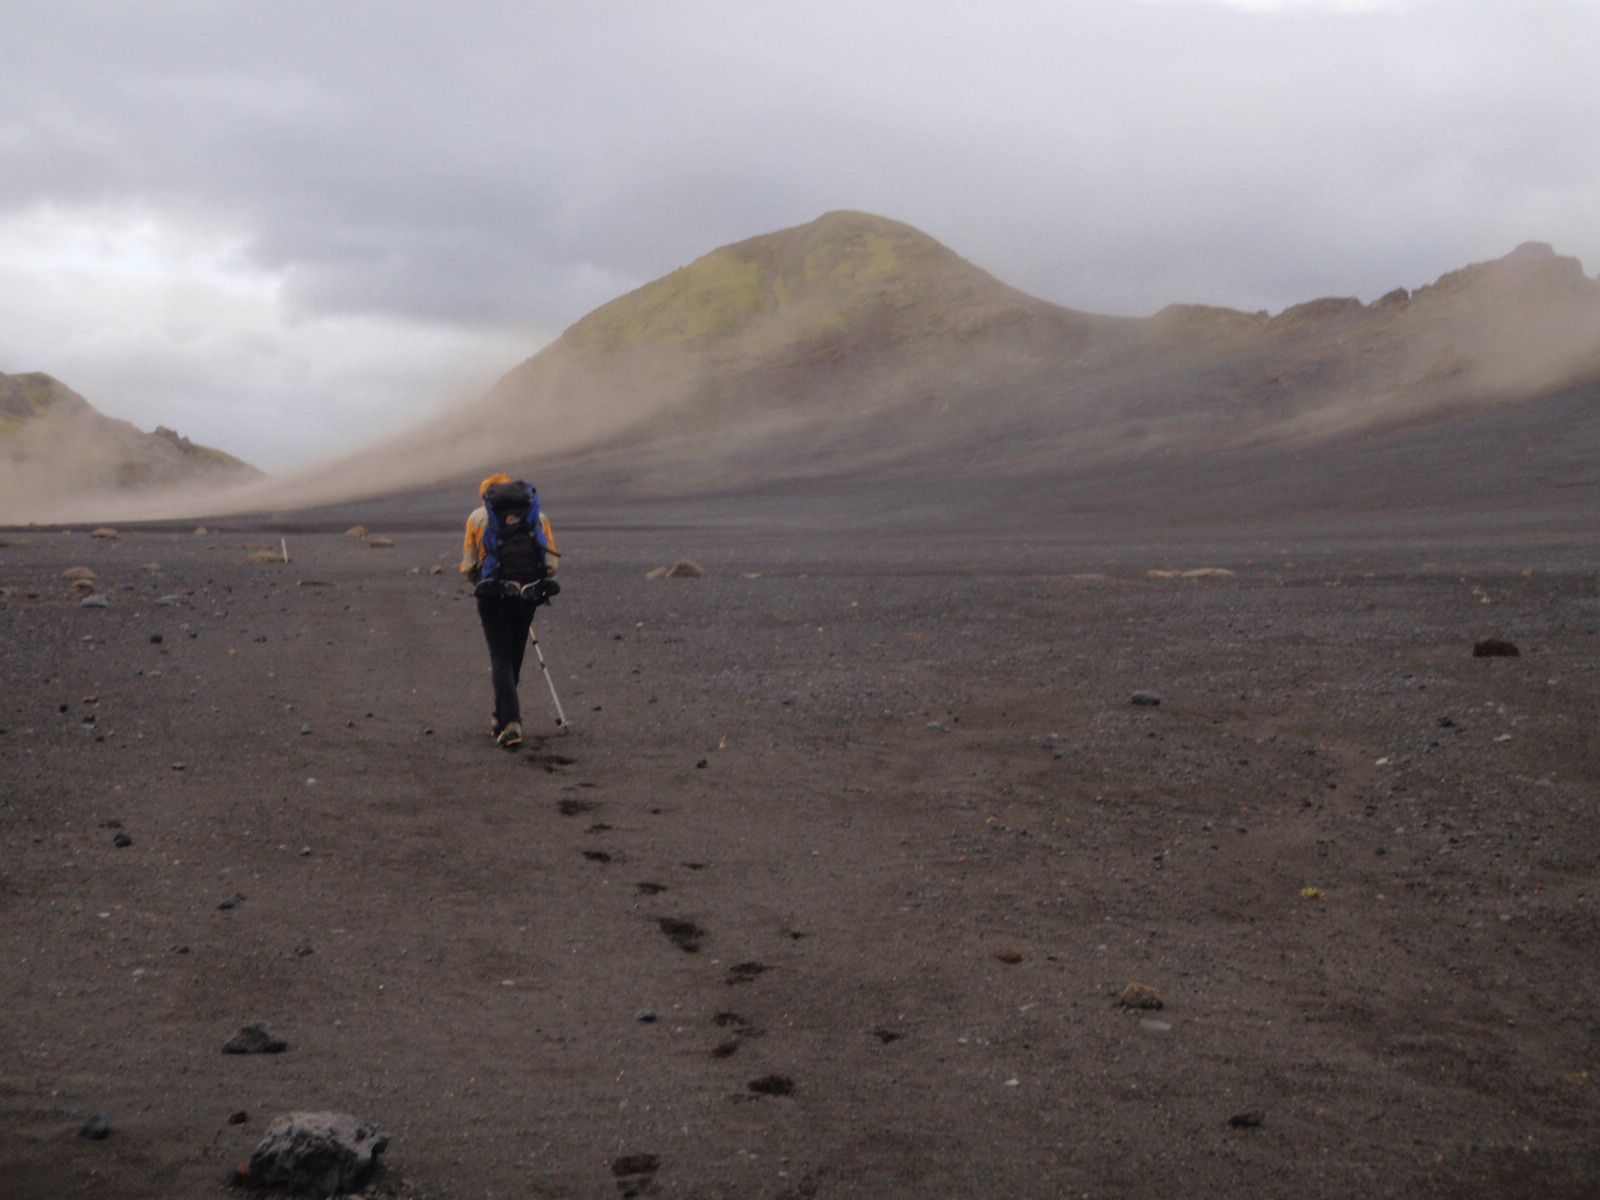 Laugeregar Trek in Iceland